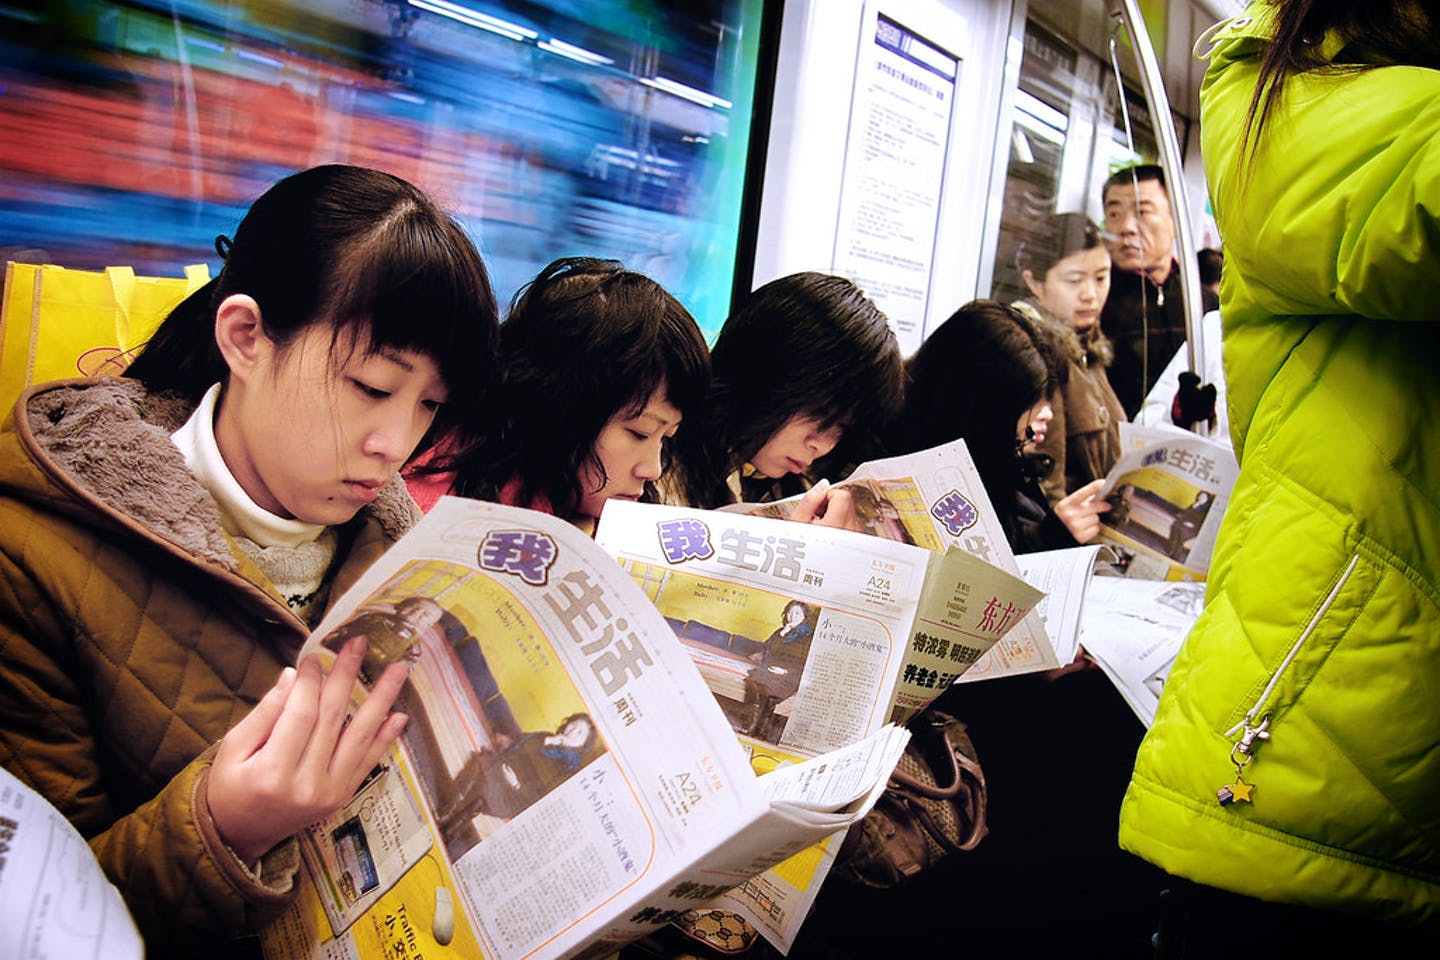 Chinese commuters catch up on news in metro